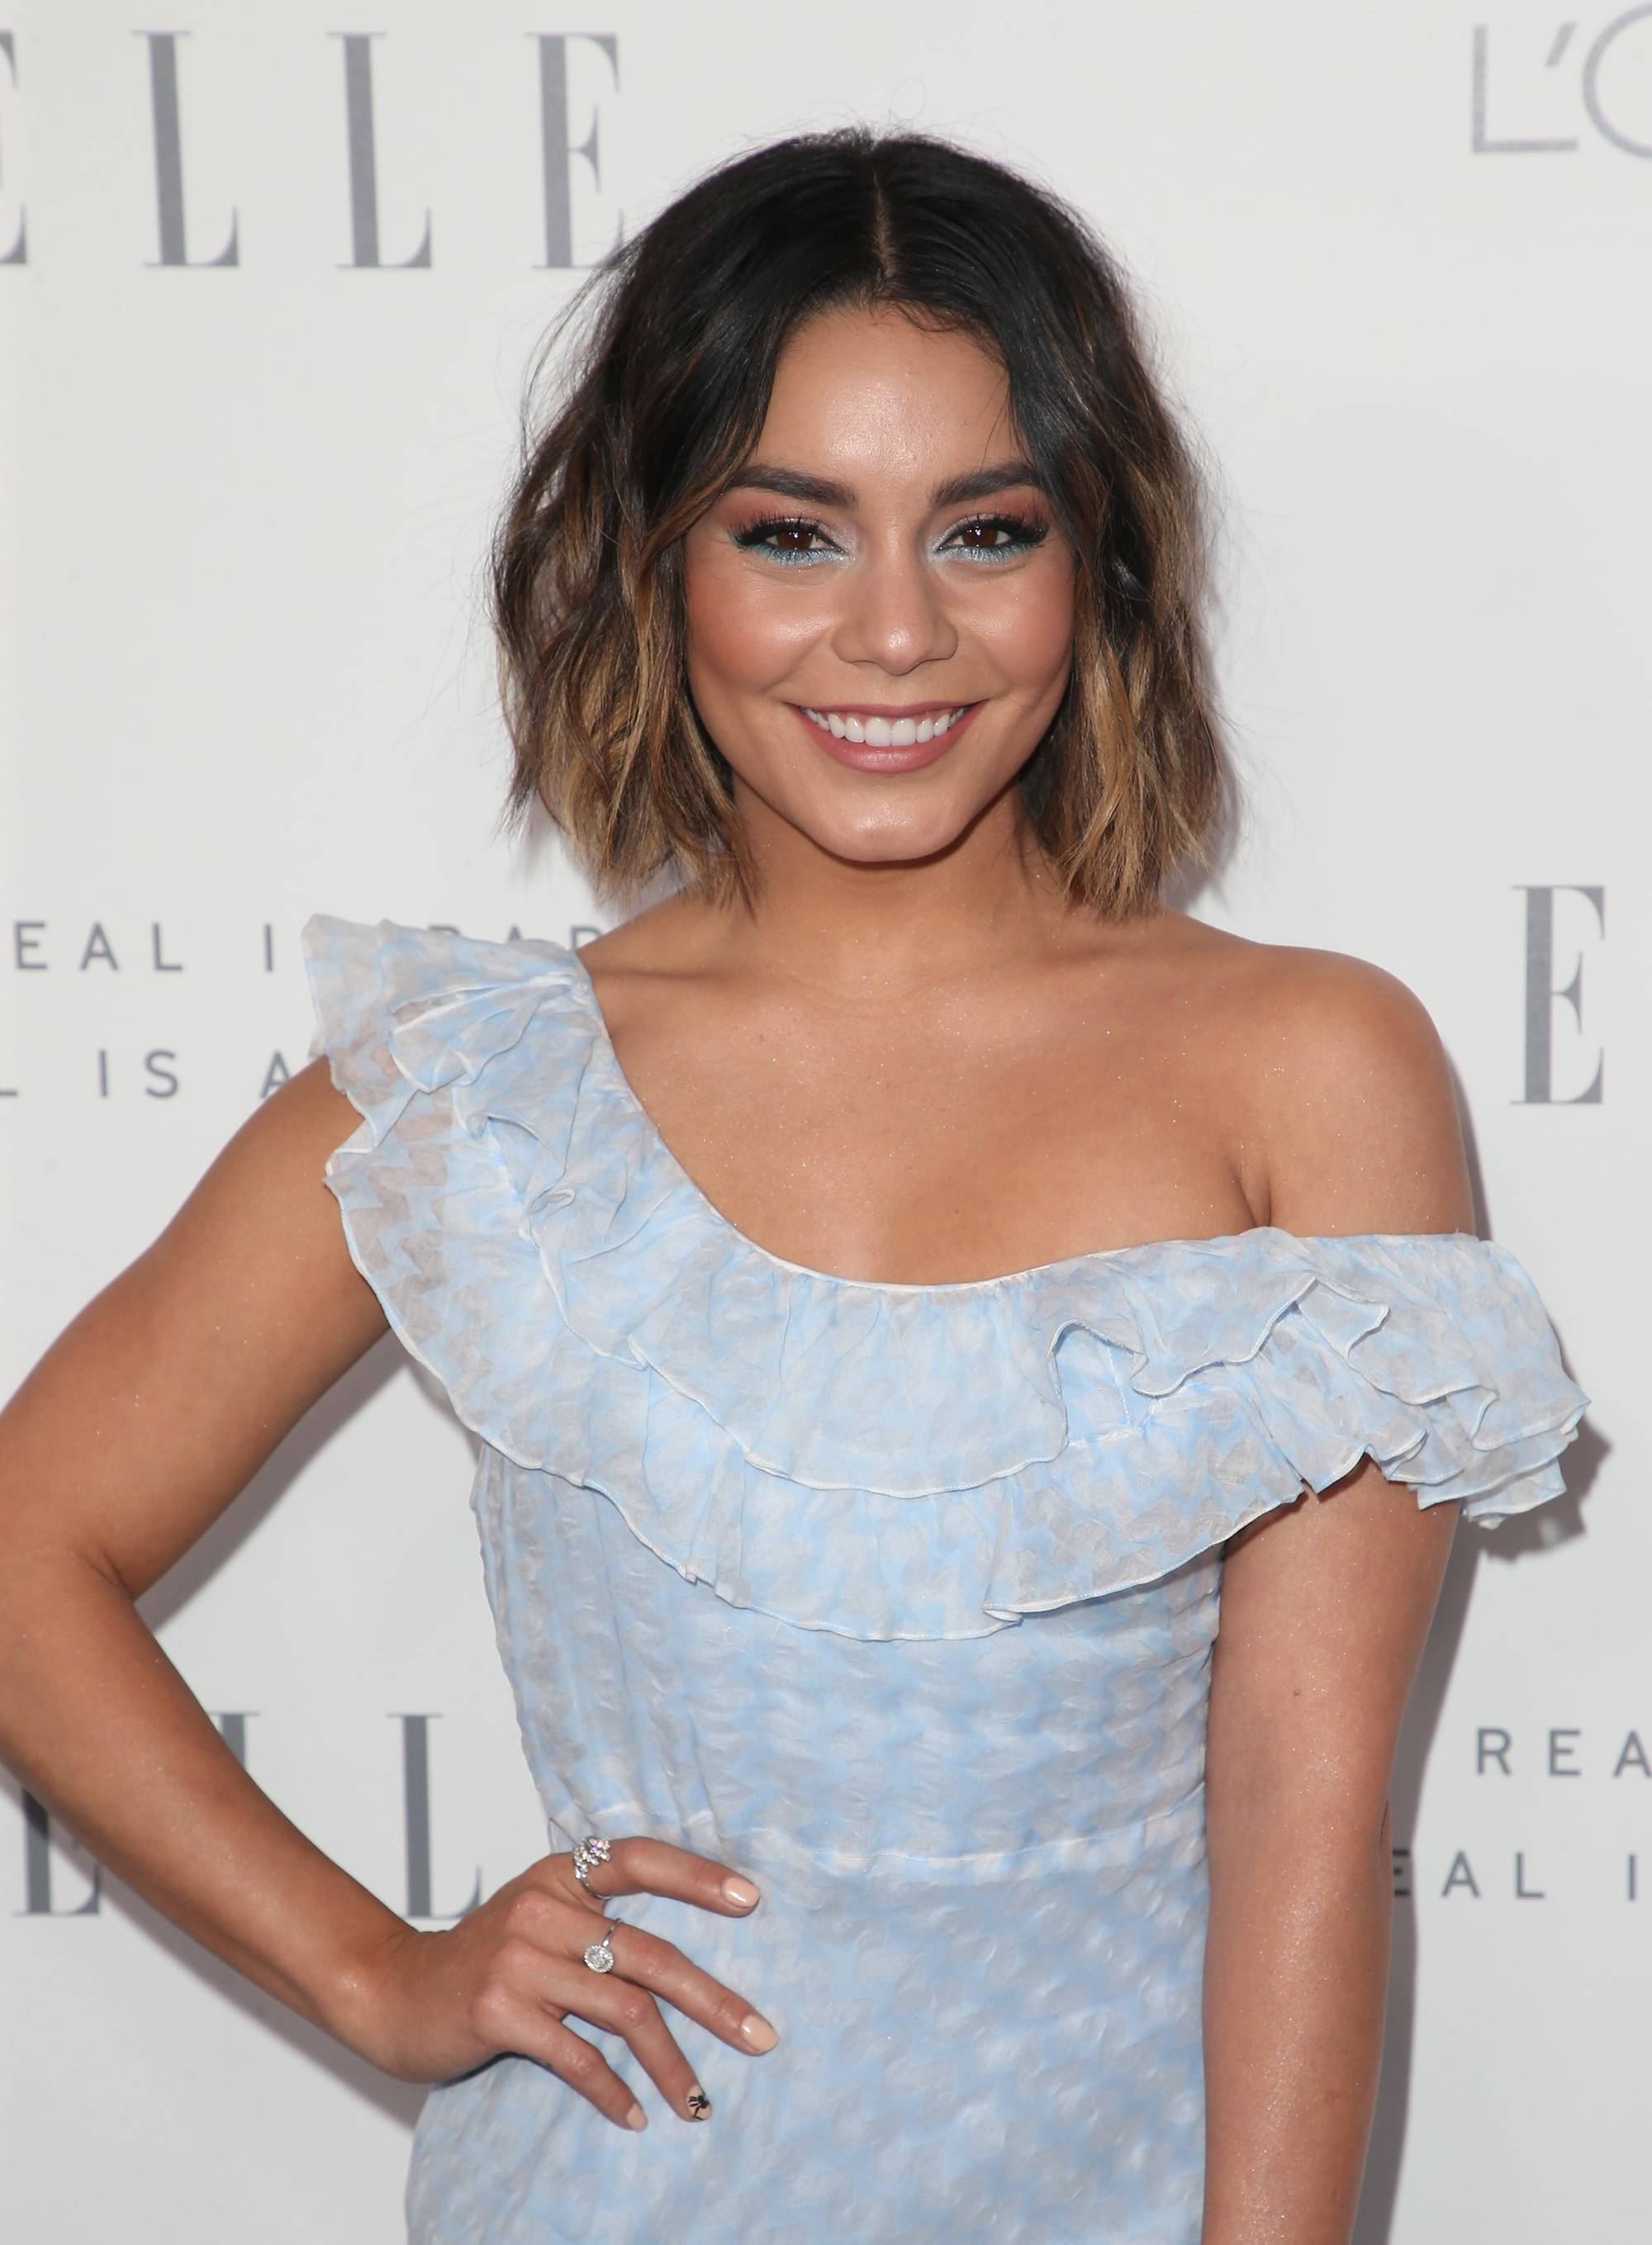 vanessa hudgens shoulder length dark hair with ombre highlights